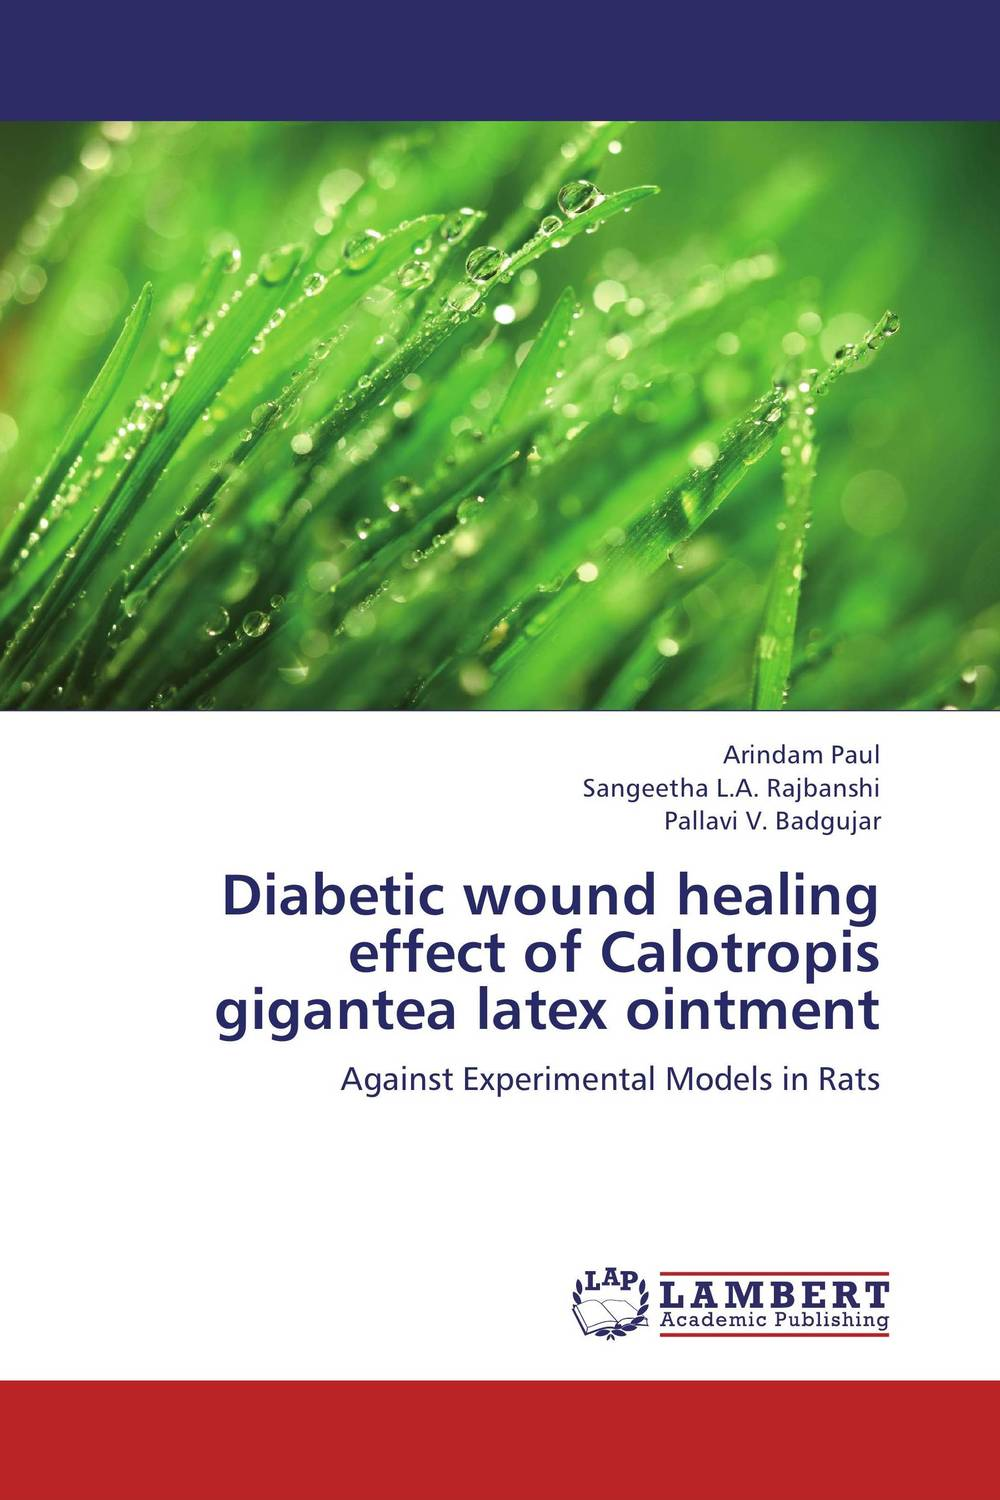 Diabetic wound healing effect of Calotropis gigantea latex ointment wound healing properties of some indigenous ghanaian plants